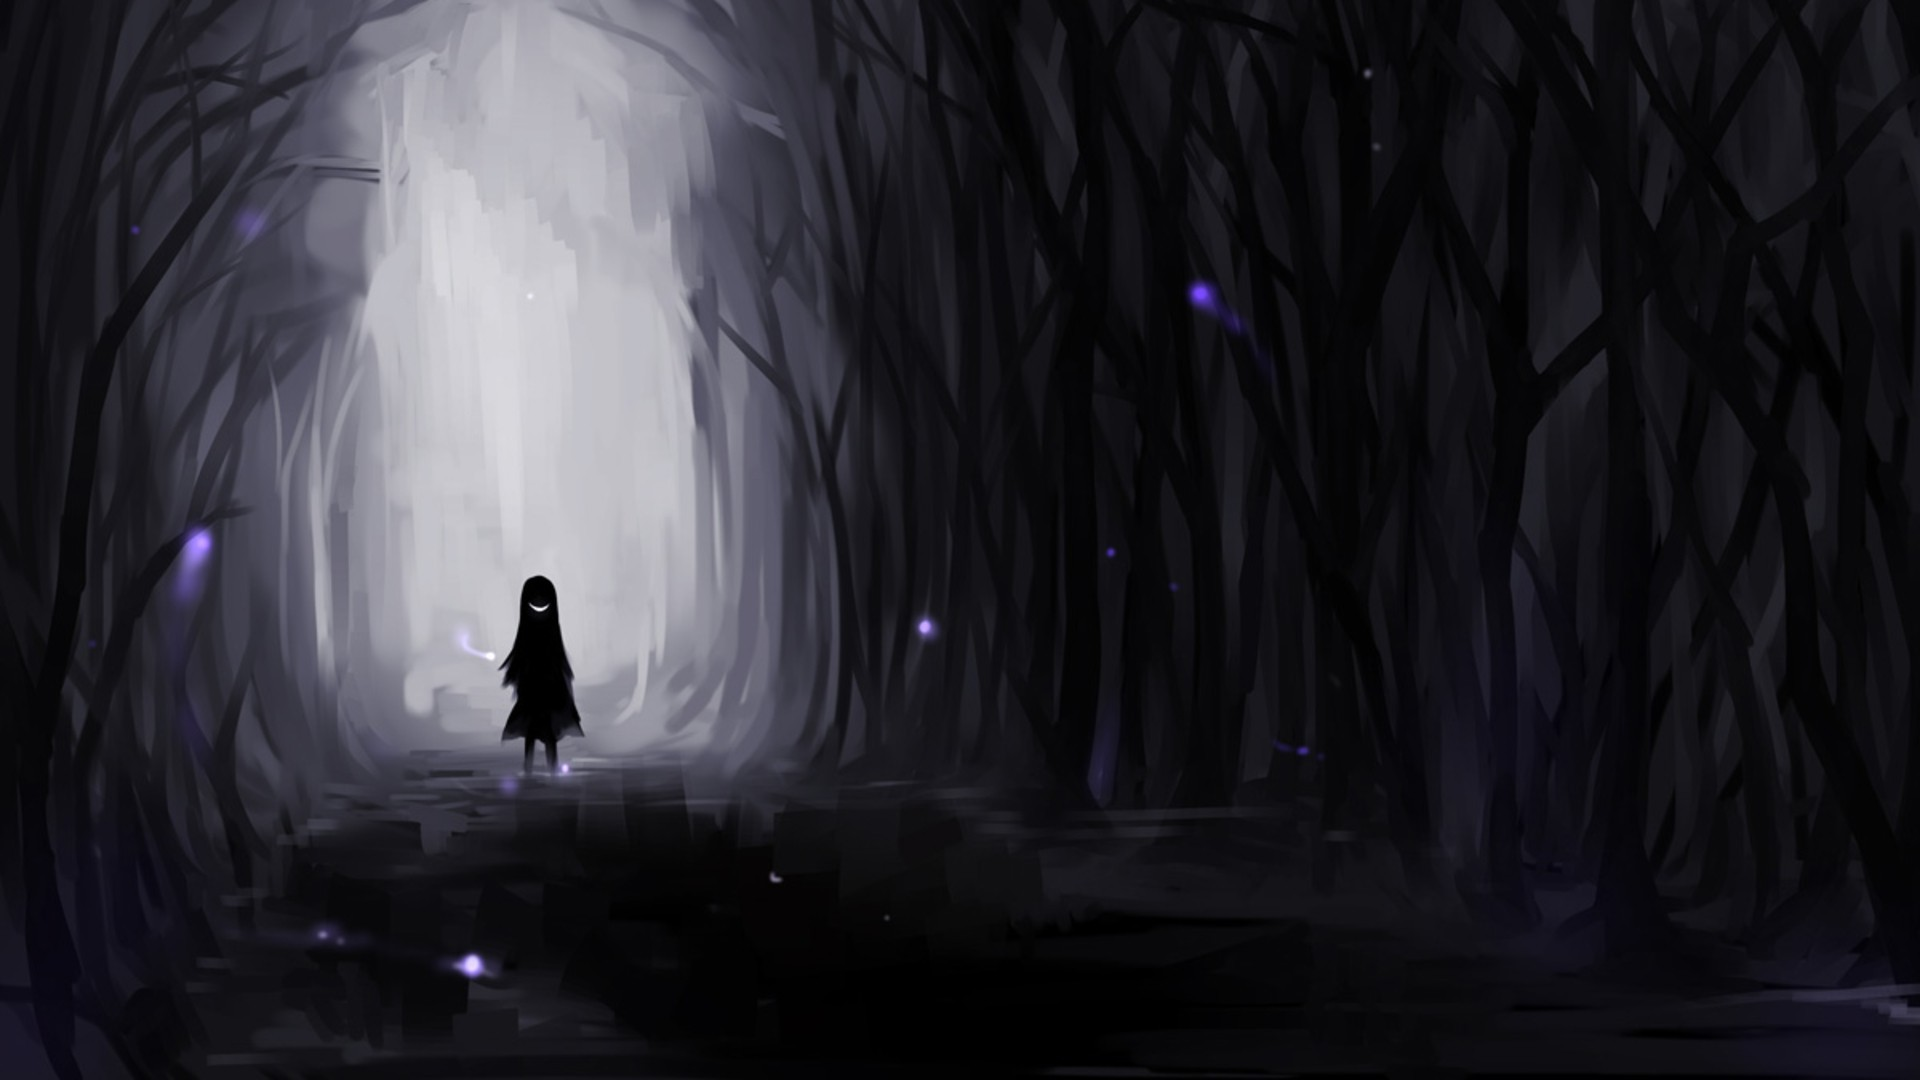 Res: 1920x1080, Dark clipart creepy forest #9